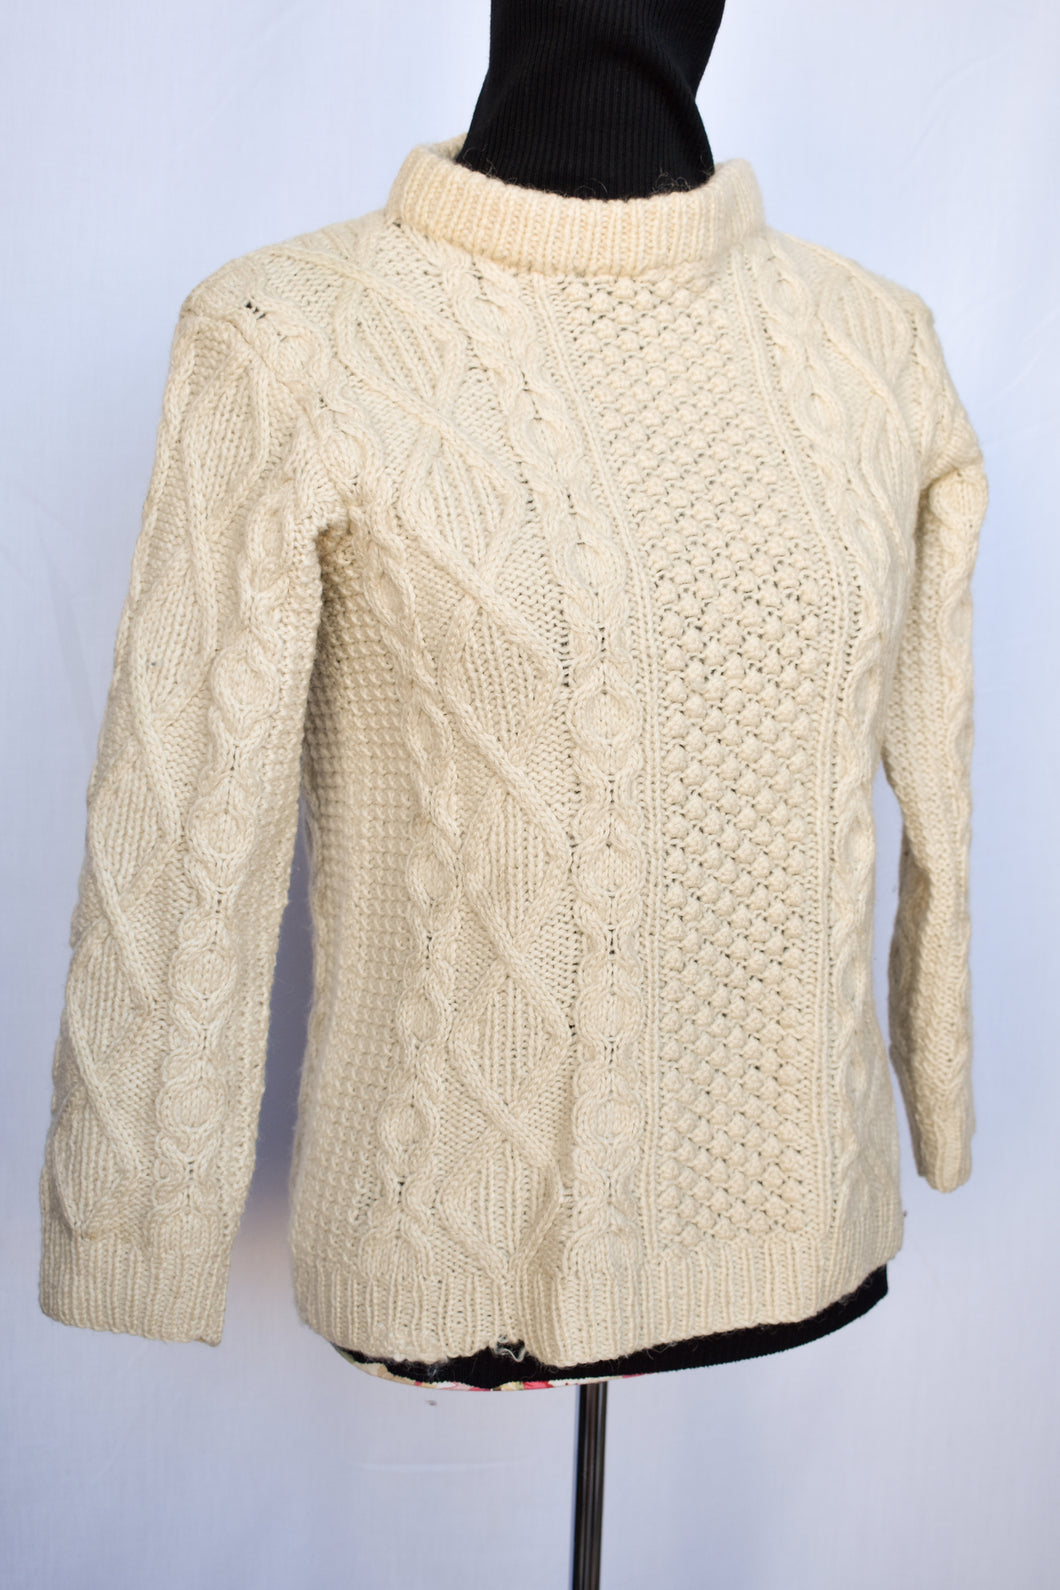 Cream cable knit jersey, size S